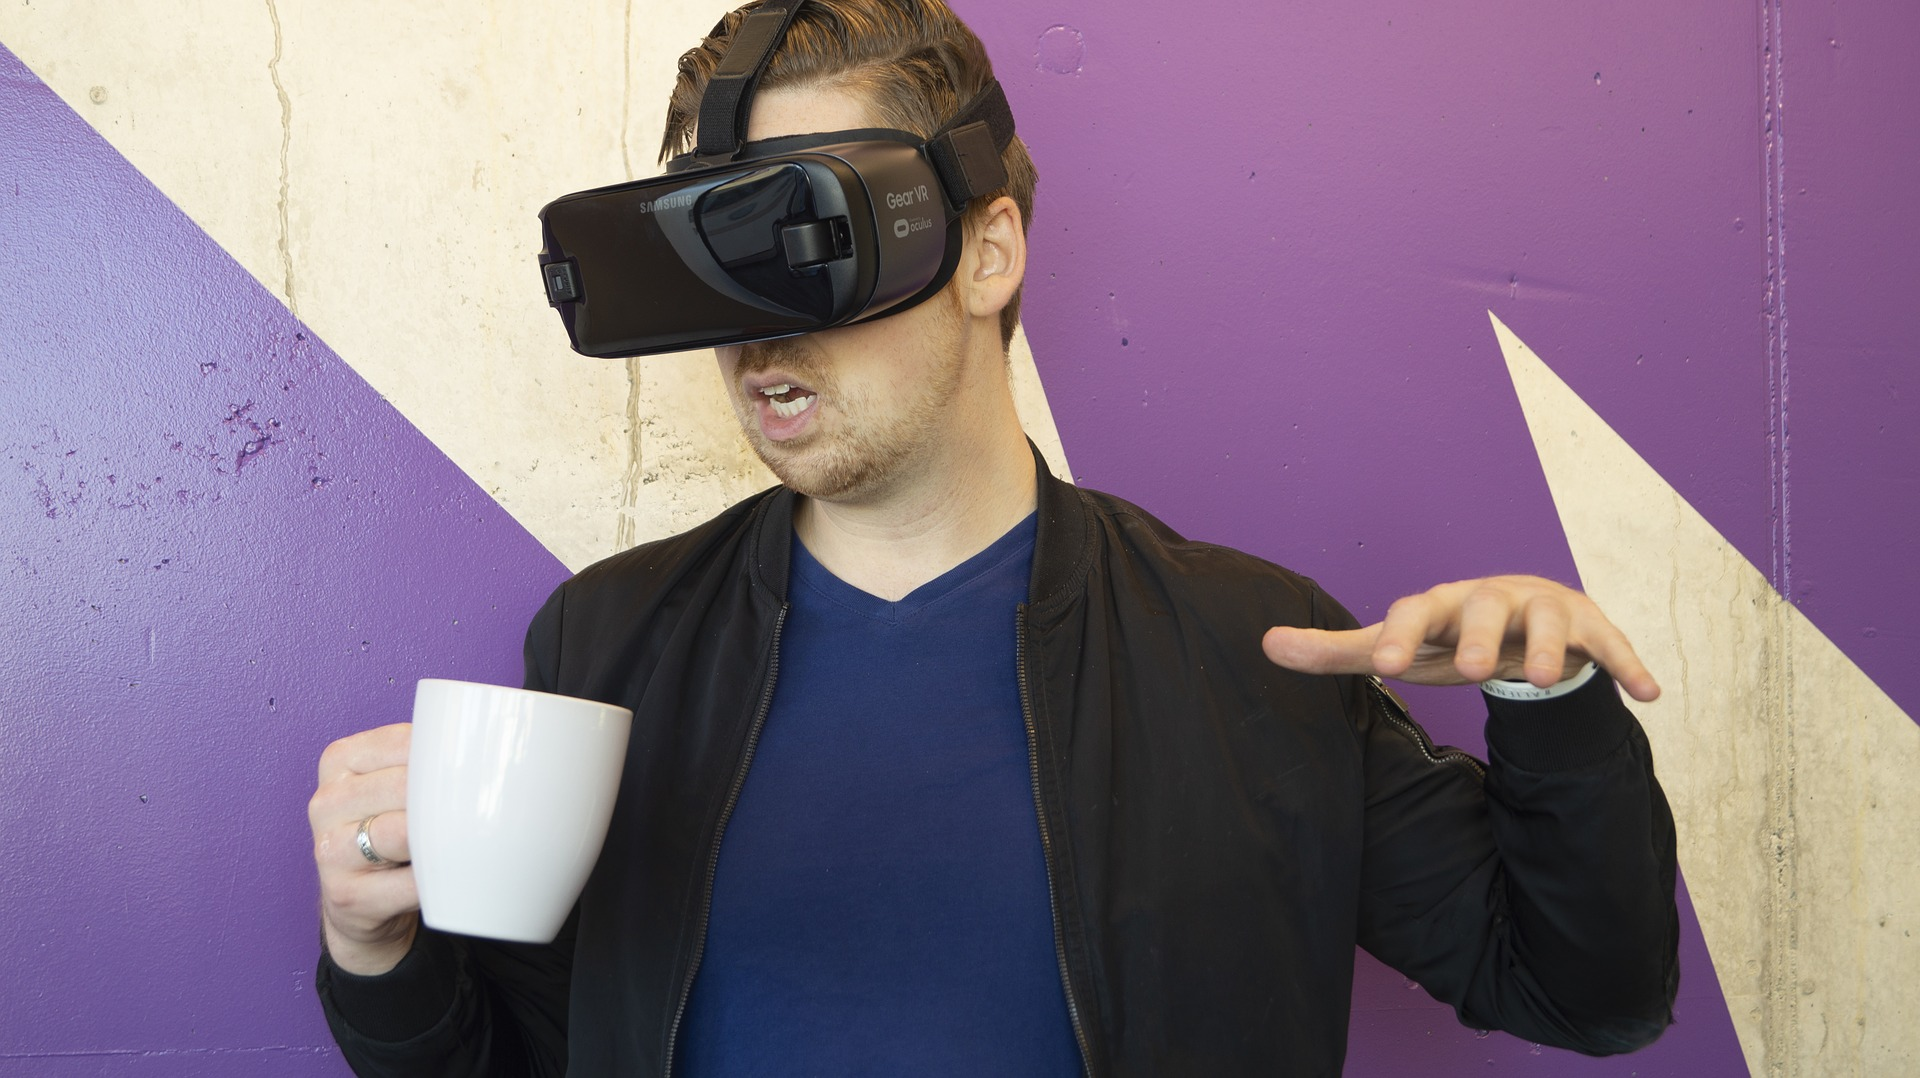 Man wearing a VR headset and holding a mug